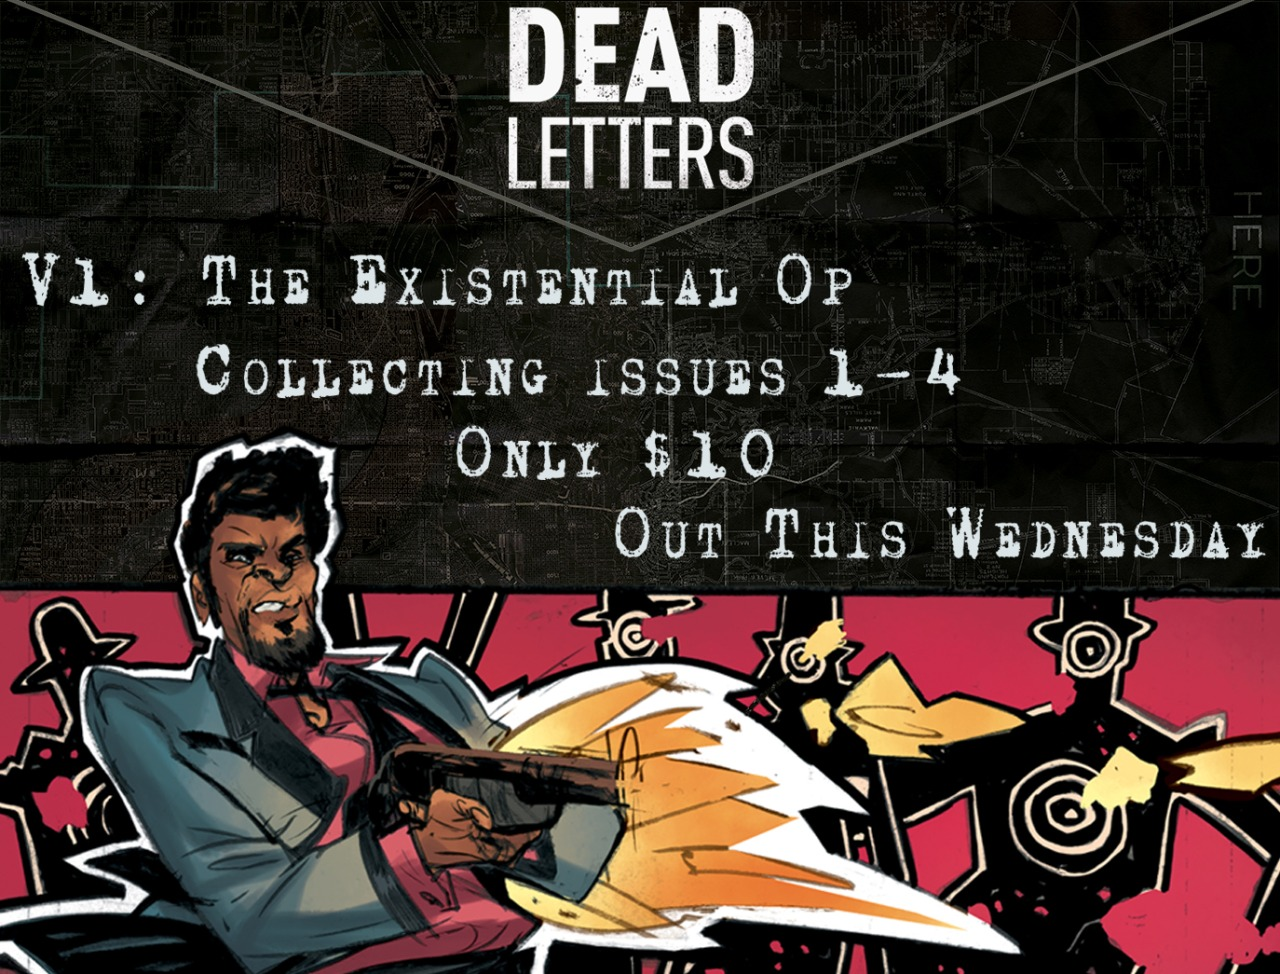 deadletterscomic :     Coming this Wednesday is our first trade of DEAD LETTERS.   Fun fact: the title of this collection, The Existential Op, was the original title the book was pitched as, a super winky nod to one of the main inspirations for the book: Dashiell Hammett's character, The Continental Op.   Fortunately everyone came to their senses pretty quick and we figured out a title way better for this book than a pun that would only be hilarious if this were 1955 or if you were a hardboiled nerd.   This collects DEAD LETTERS' first four issues. It's self-contained but is conveniently also everything you need to know in time to jump on with issue 5 coming out next month. And it's only $9.99. That is less than…a lot of stuff.     My first solo trade comes out this wednesday and i am beyond excited.